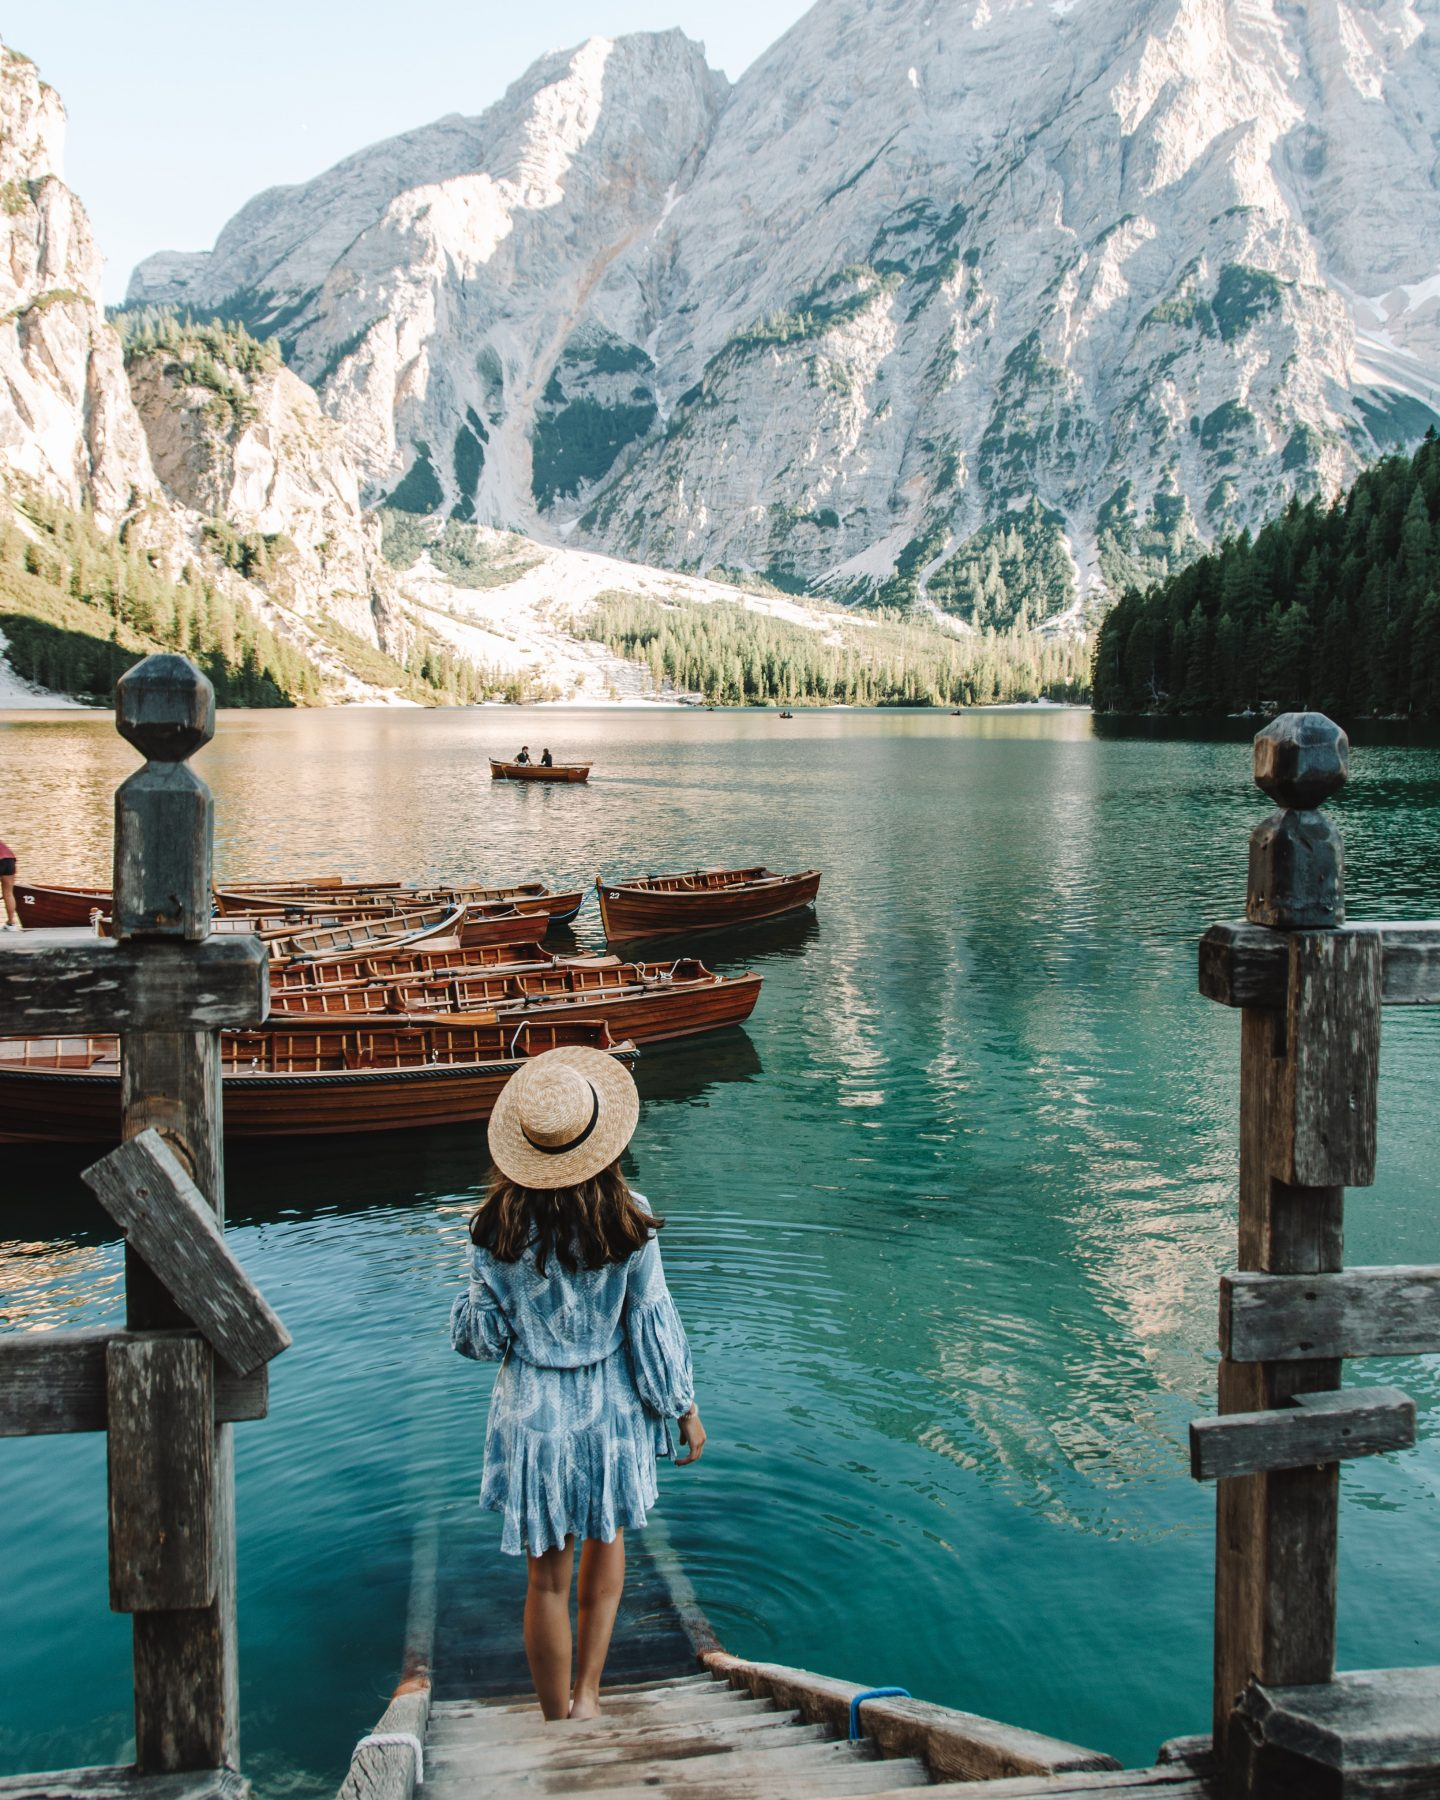 Girl in blue dress and a hat at Lago di Braise in the Dolomites, Italy